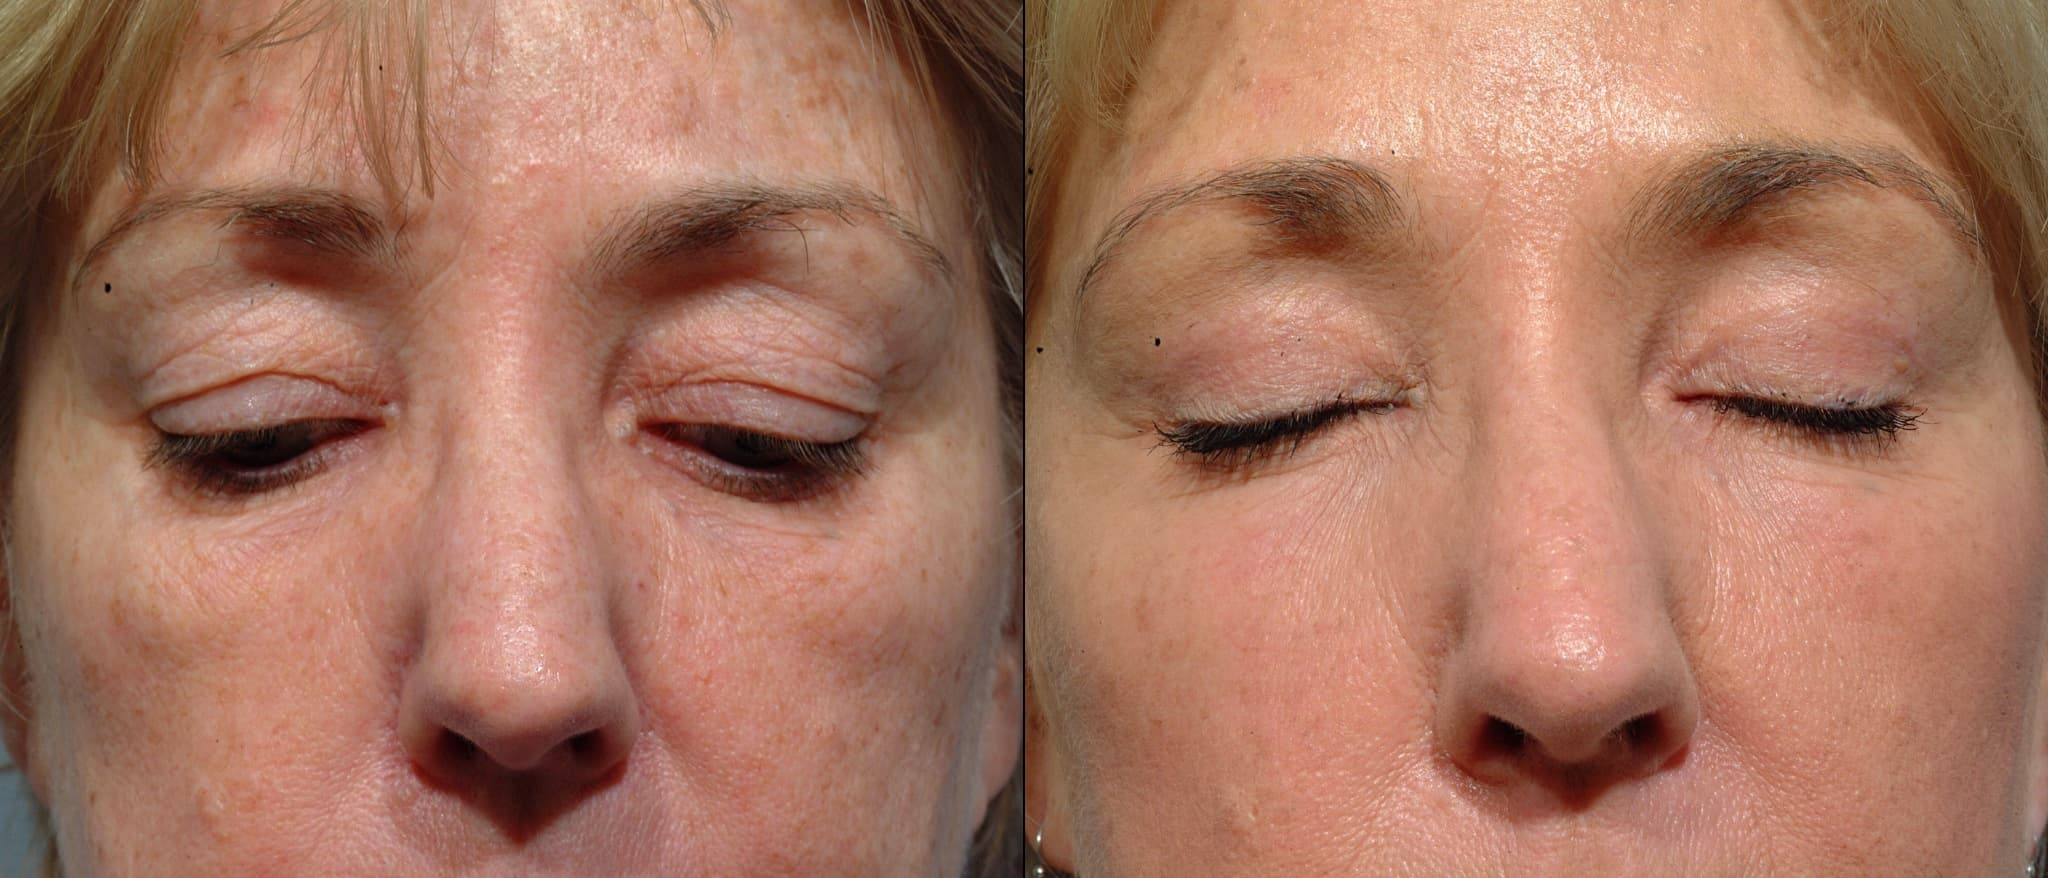 Upper Eye Lid Before And After Plastic Surgery Pics photo - 1